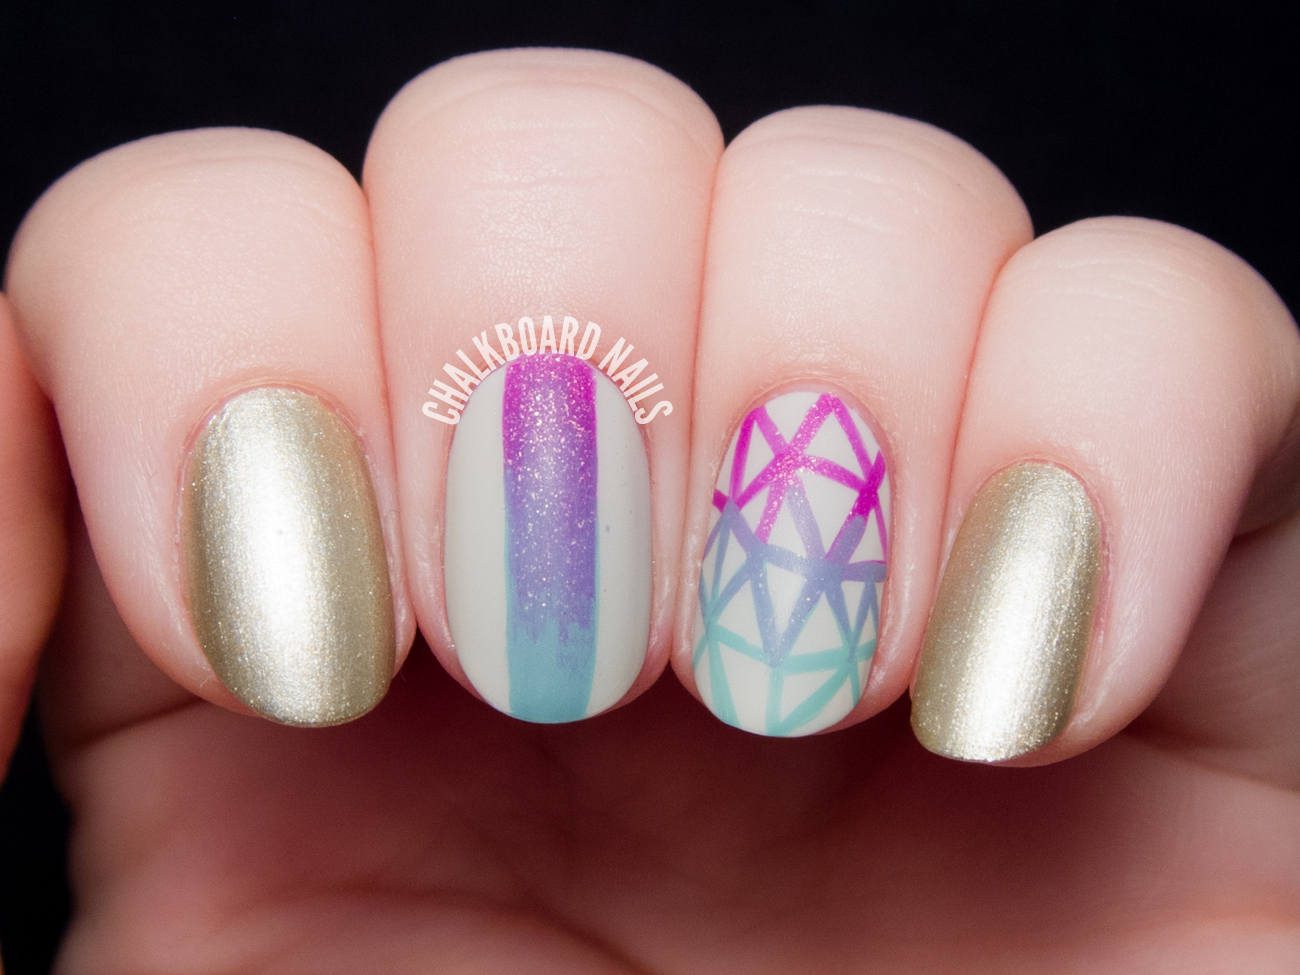 Geometric Gradient Nail Art by @chalkboardnails